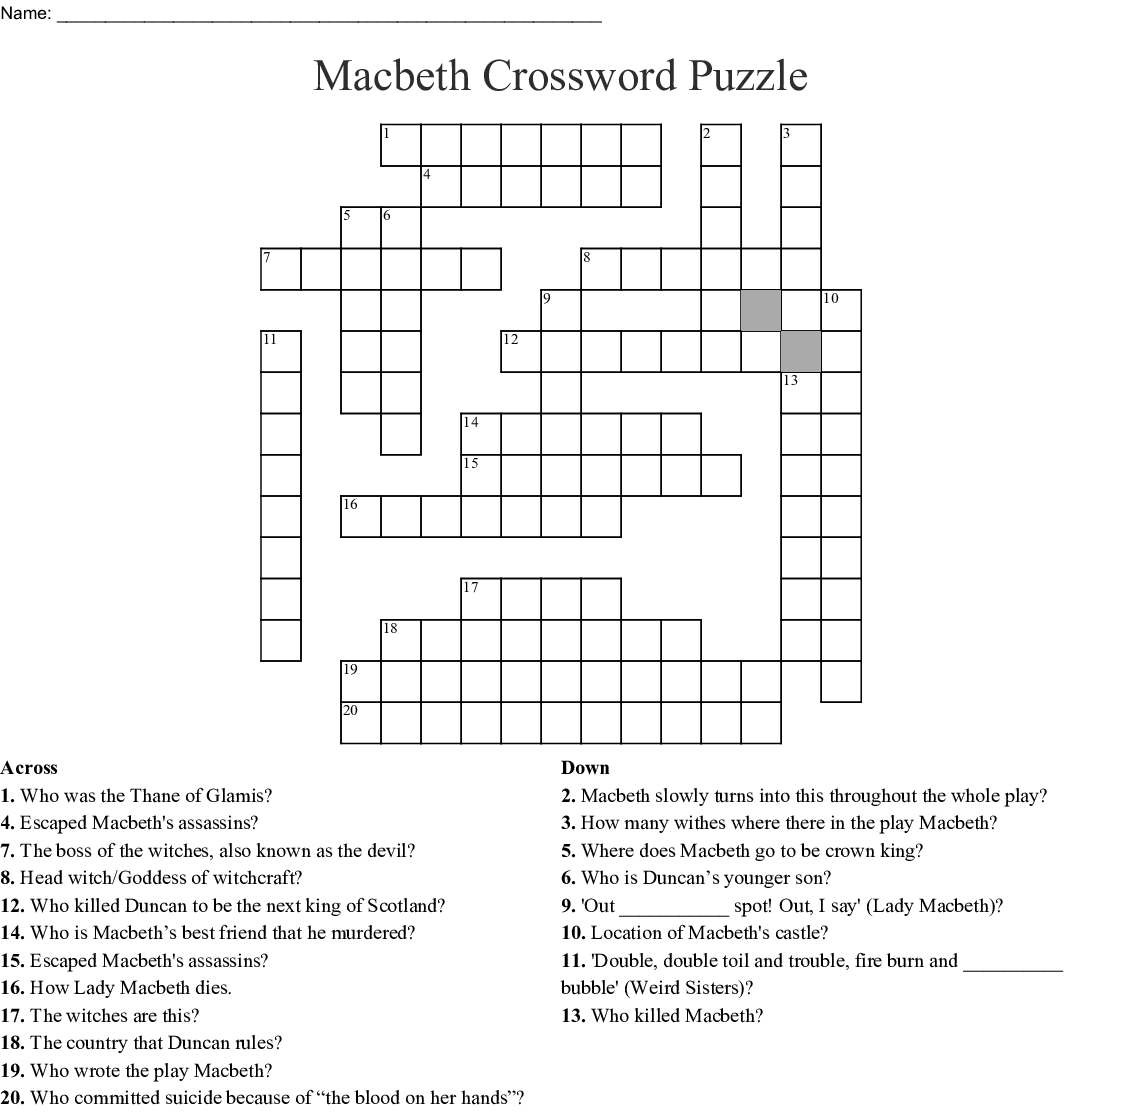 Macbeth Crossword Puzzle Crossword - Wordmint - Printable Tagalog Crossword Puzzle